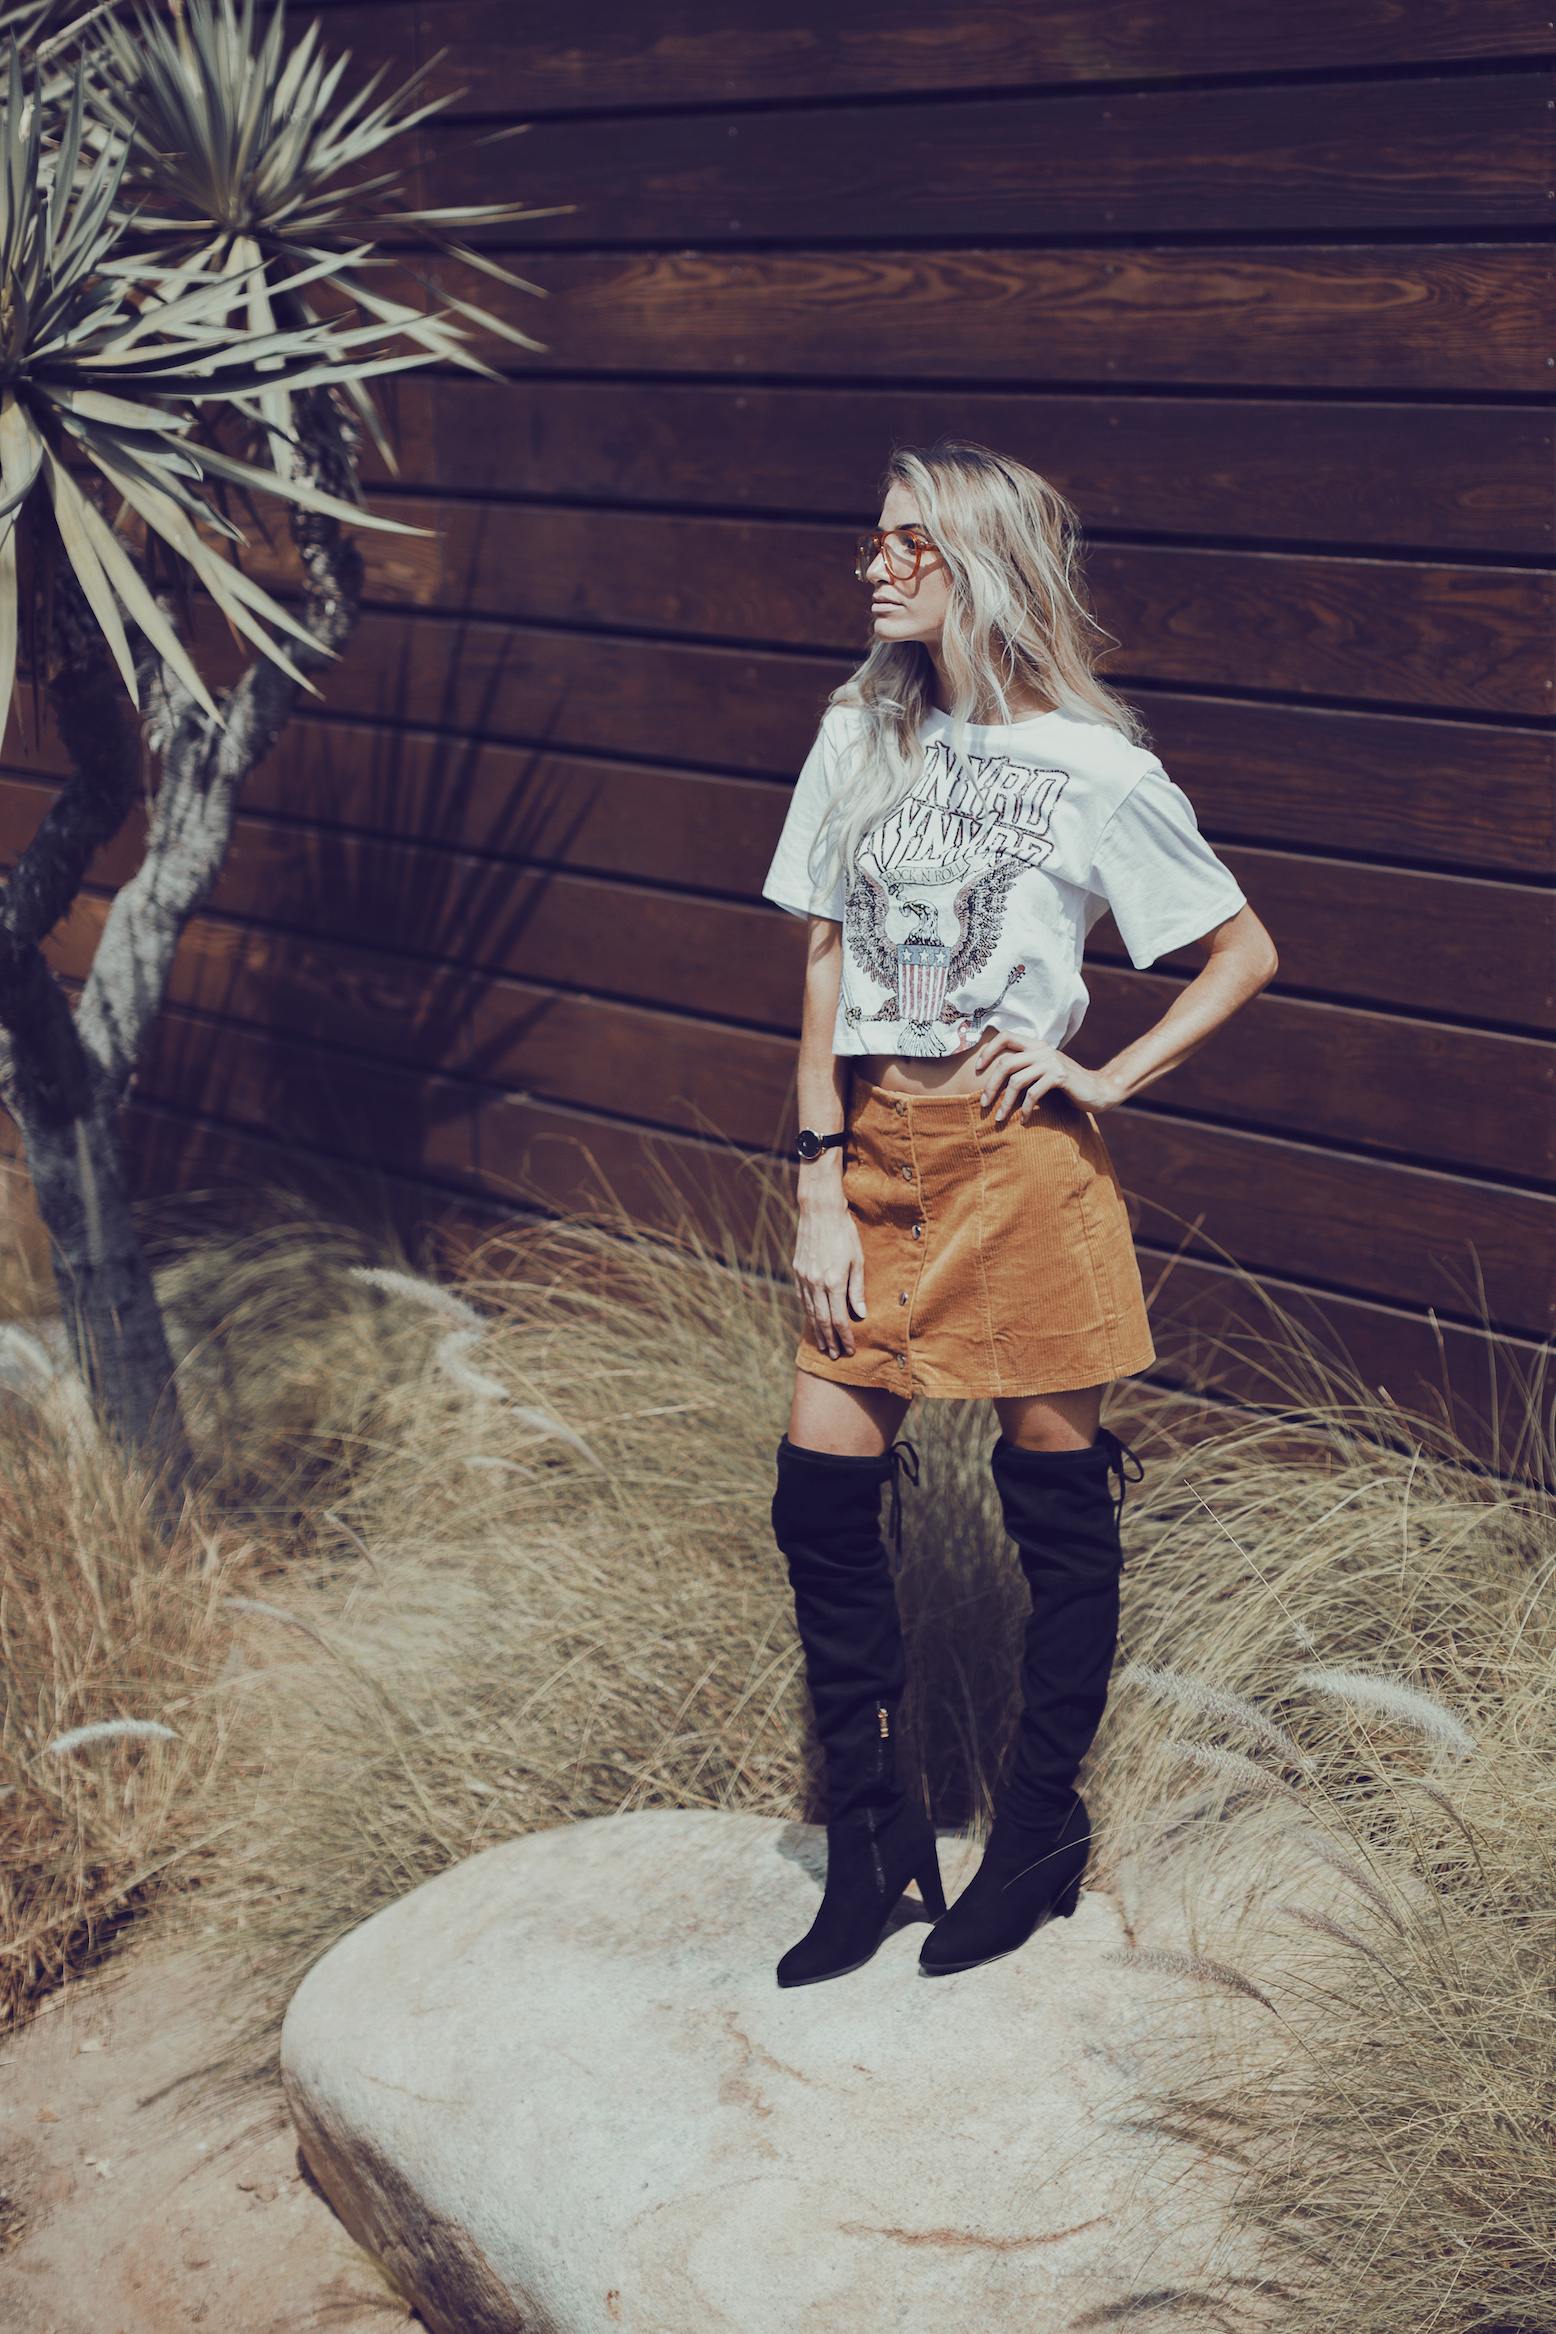 Forever 21 Corduroy Skirt and Graphic Tee with Lace Up Back + Over the Knee Boots